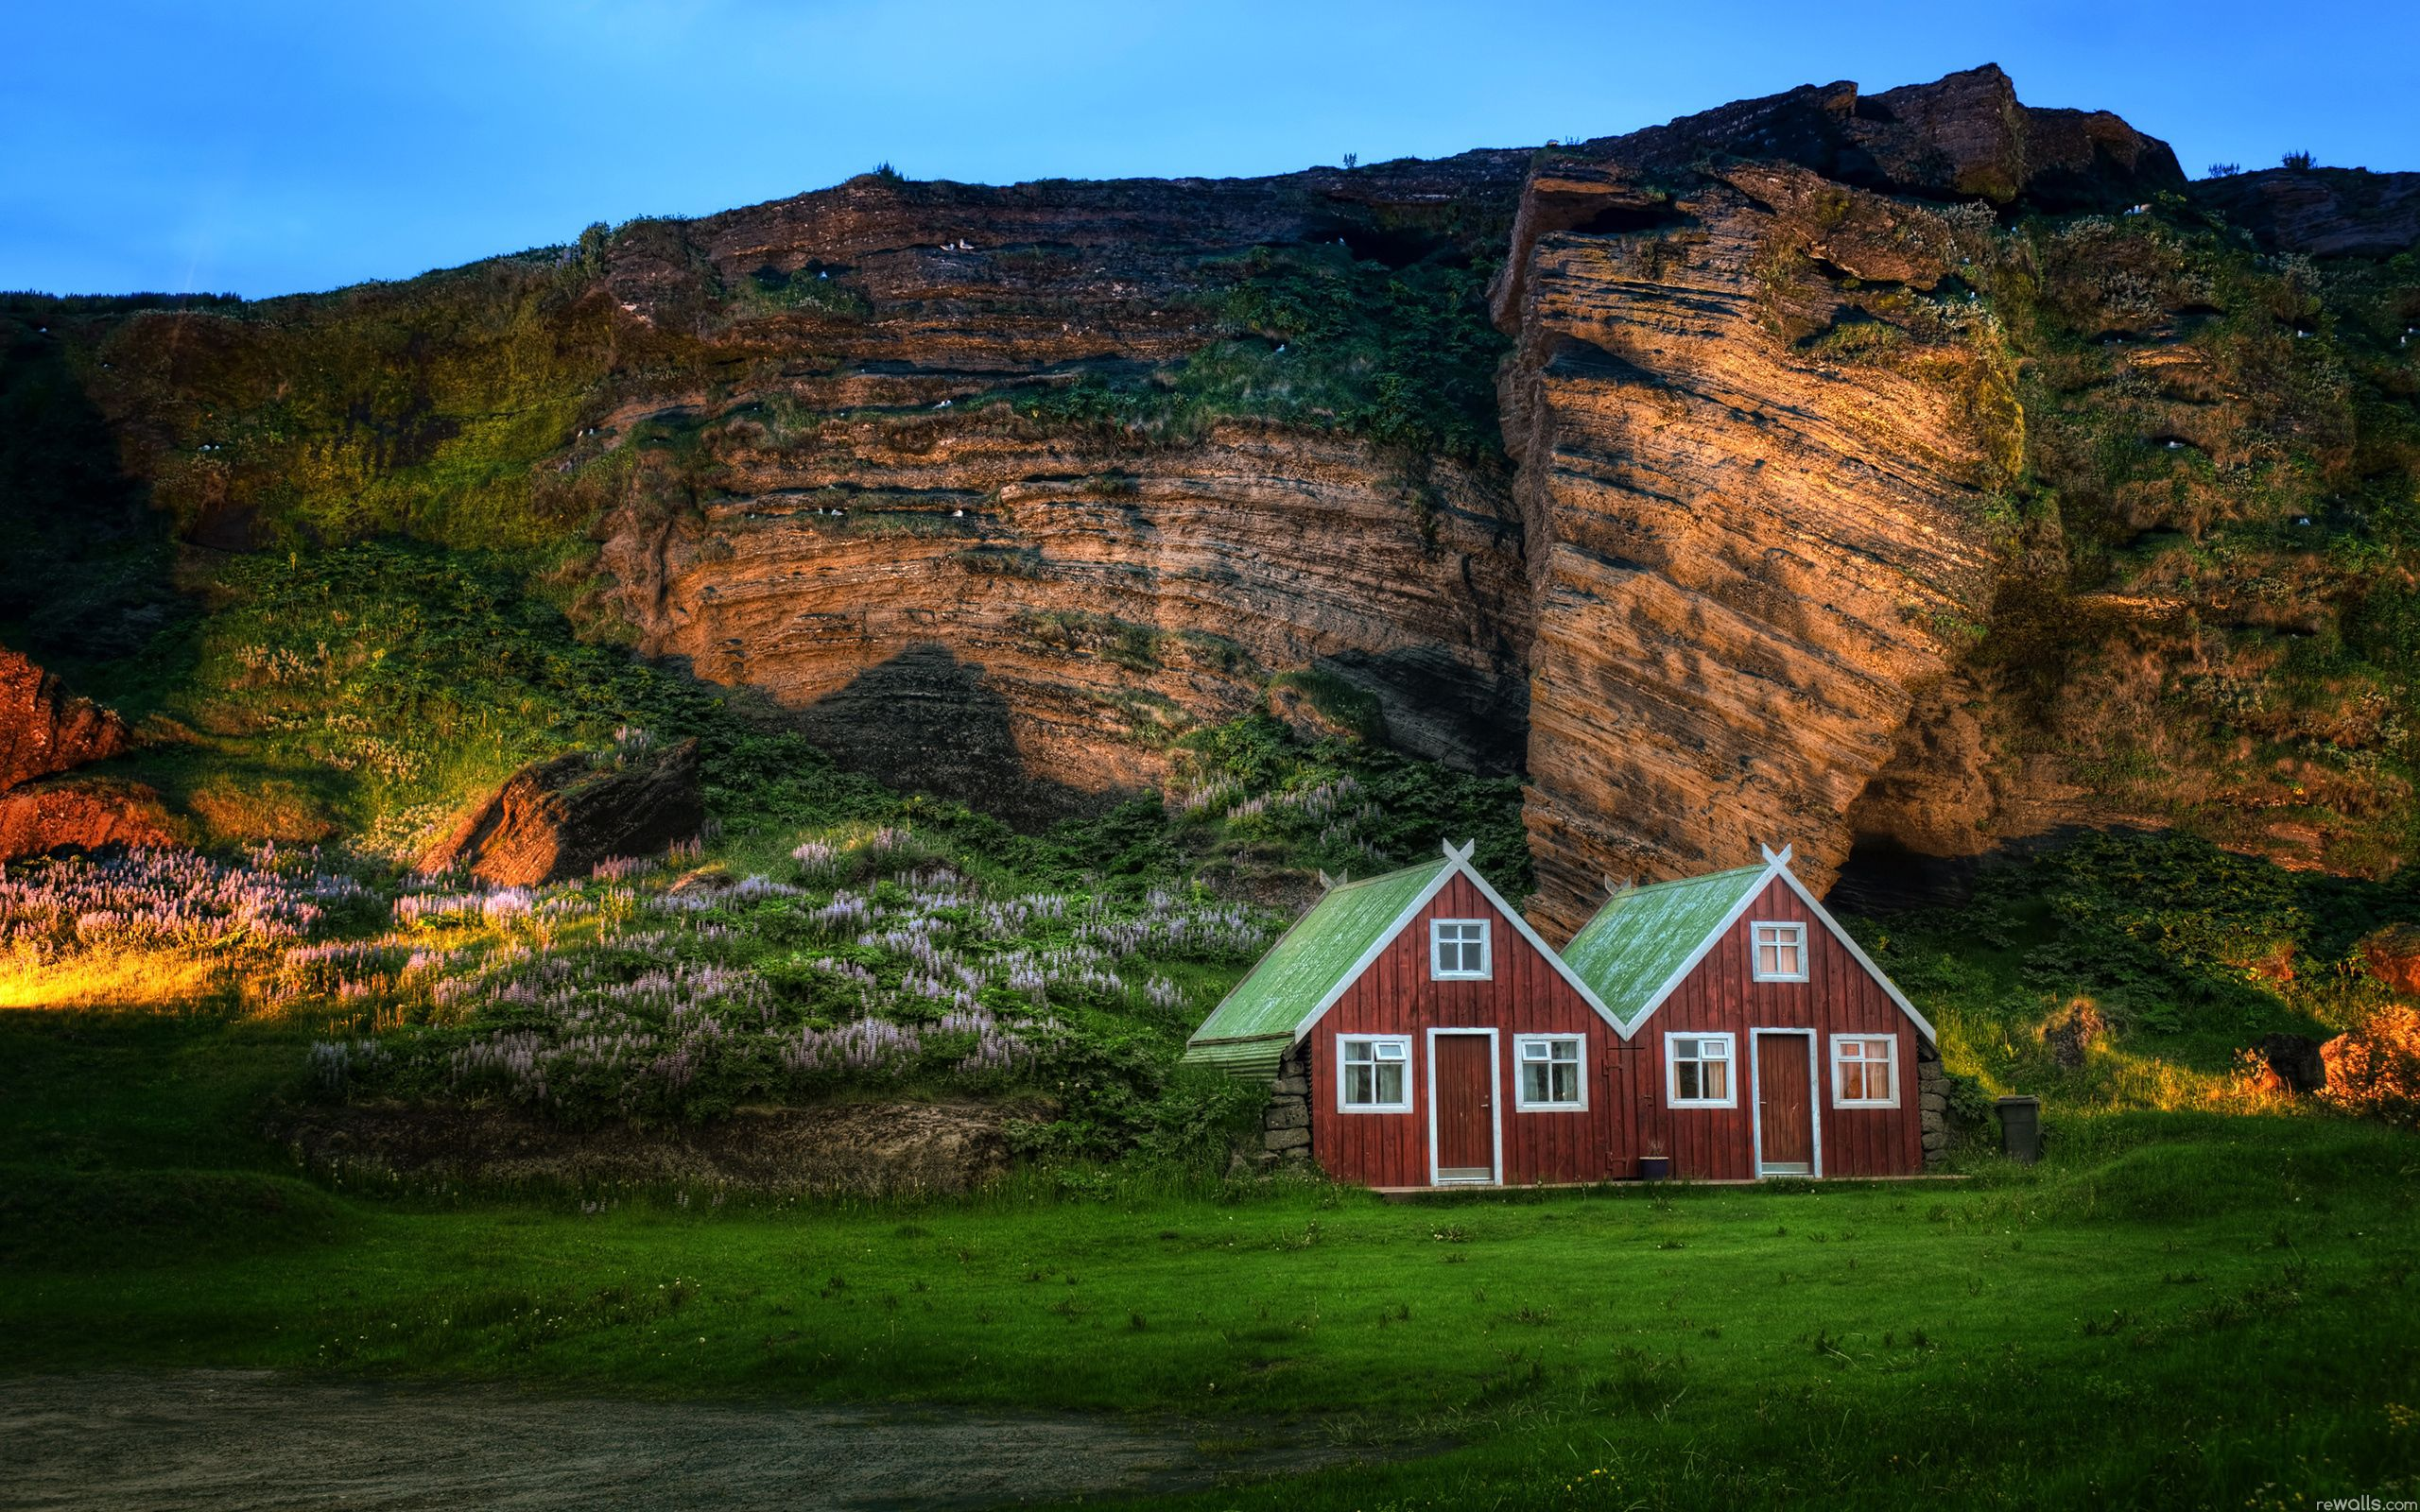 63577 download wallpaper Nature, Houses, Rock, Mountain, Shine, Light, Iceland, Meadow, Small Houses screensavers and pictures for free